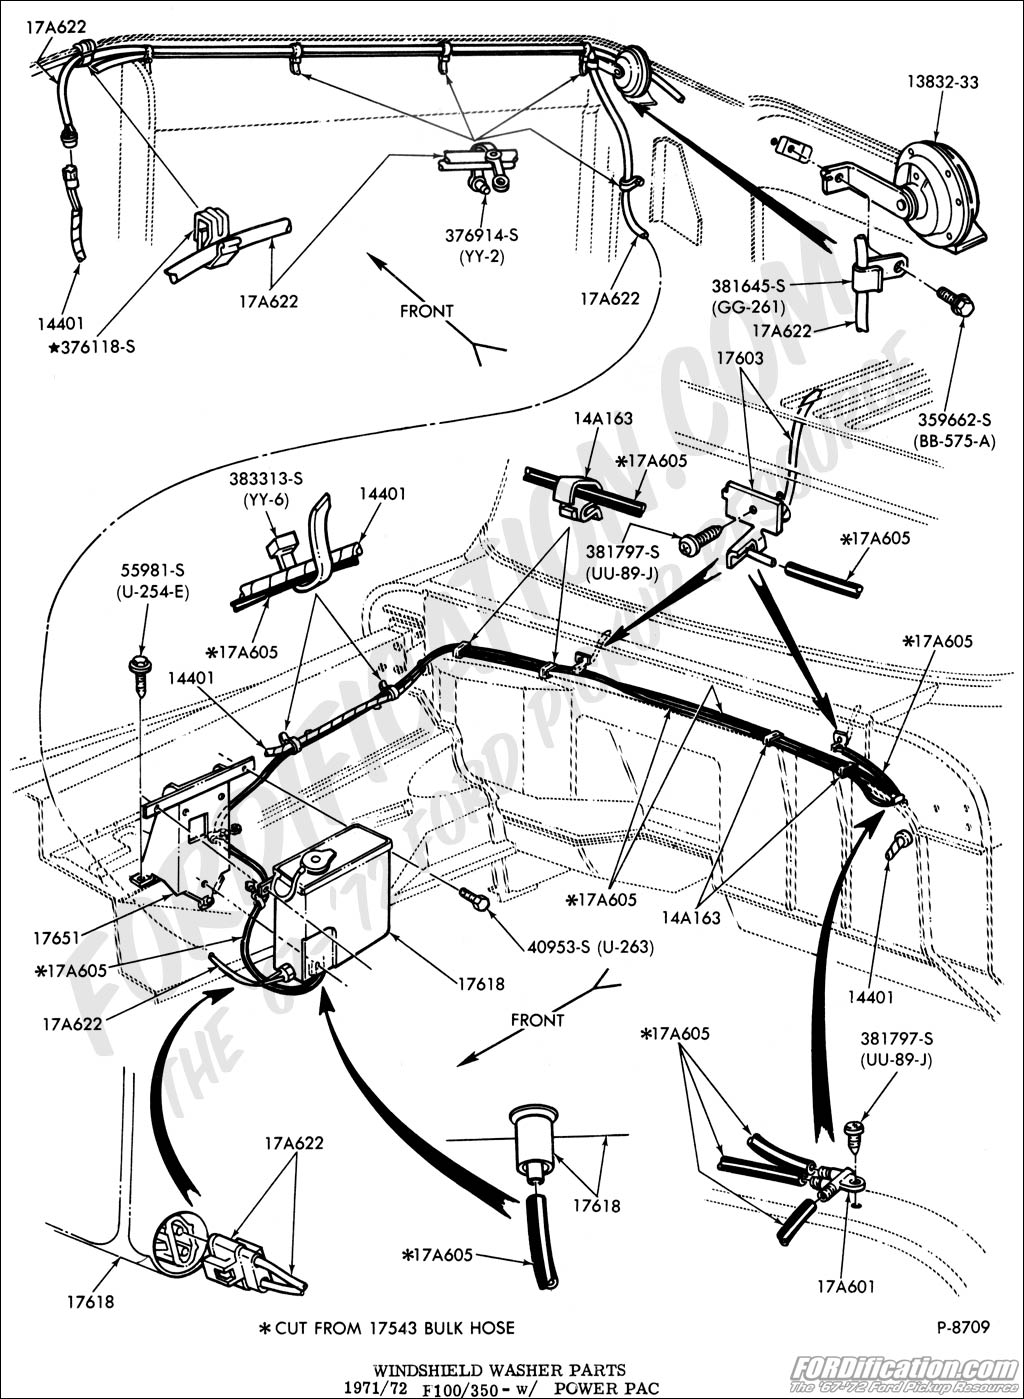 windshieldwshr pwrpak ford truck technical drawings and schematics section i wiring diagram for 2002 f750 ford truck at crackthecode.co